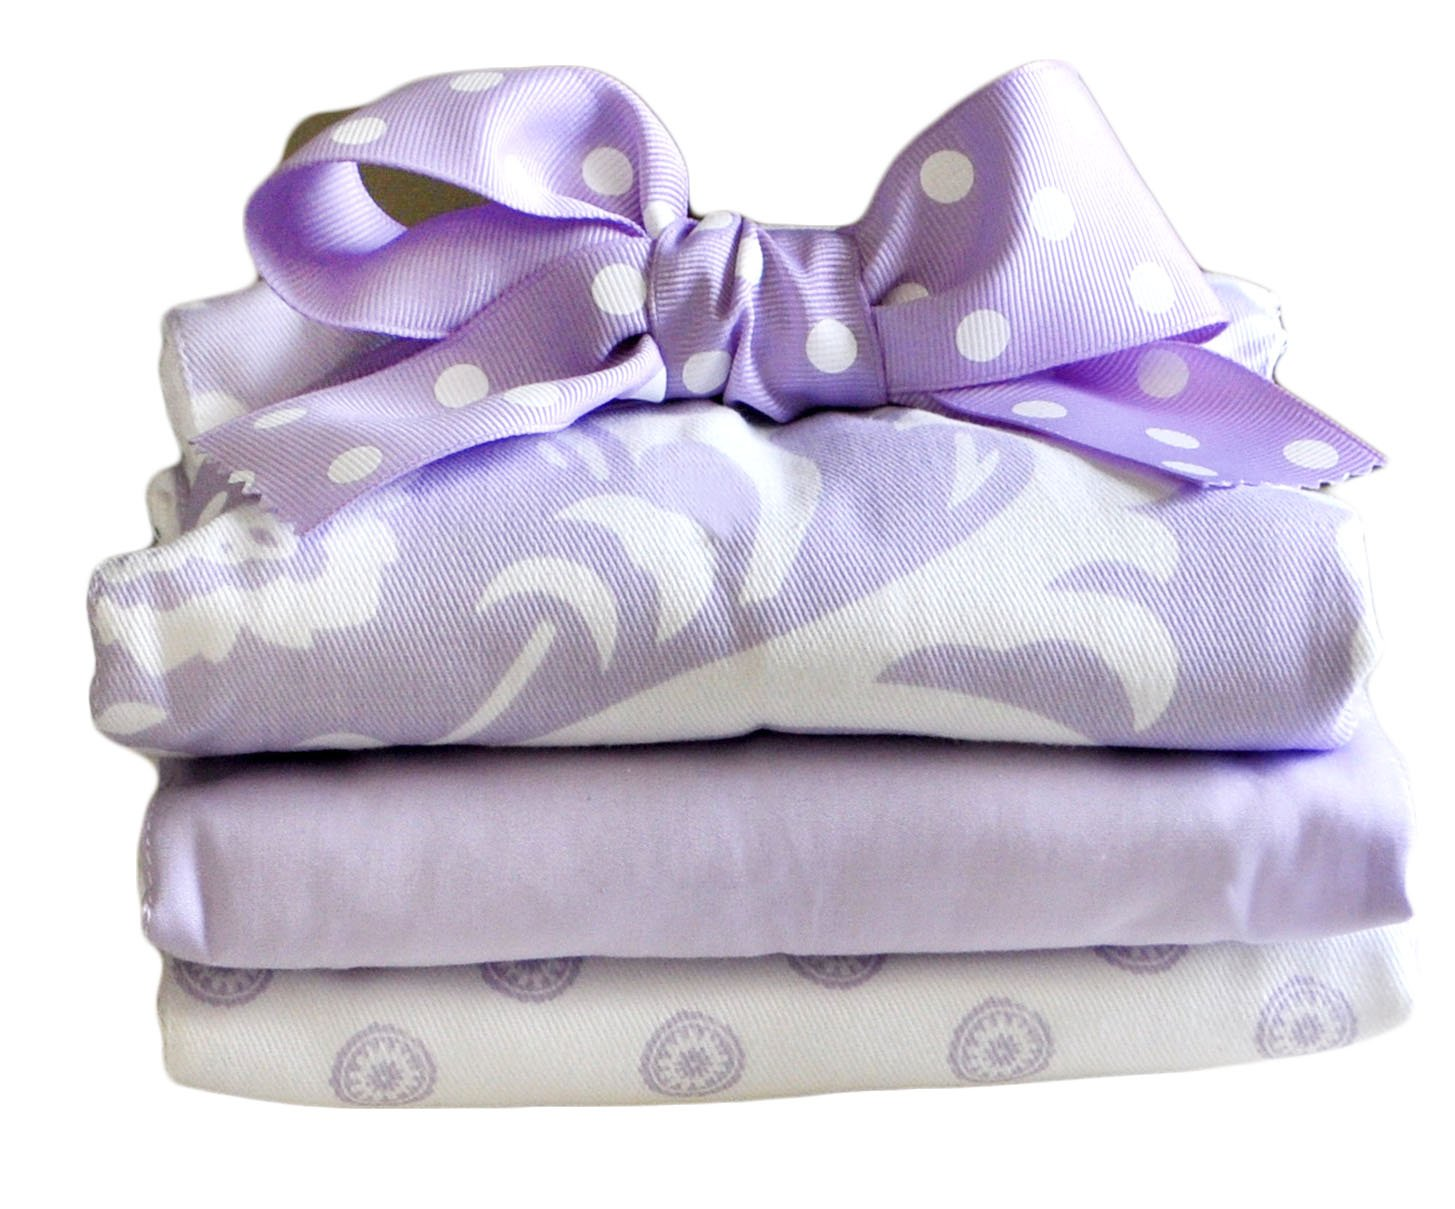 New Arrivals Burpcloth, Sweet Violet